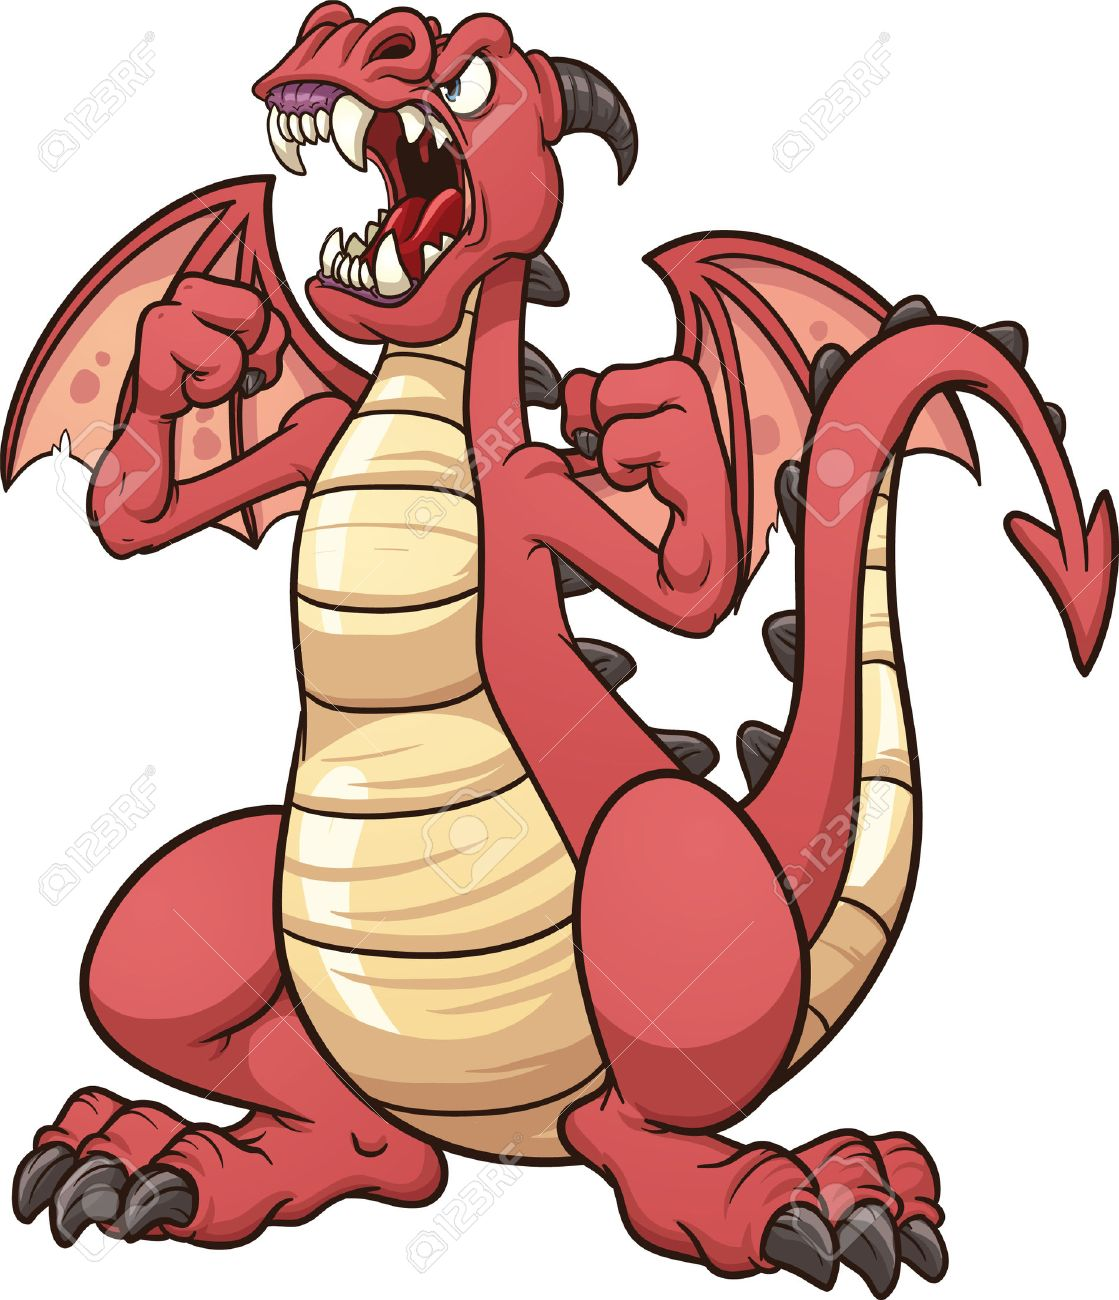 Angry cartoon dragon Vector clip art illustration with simple...